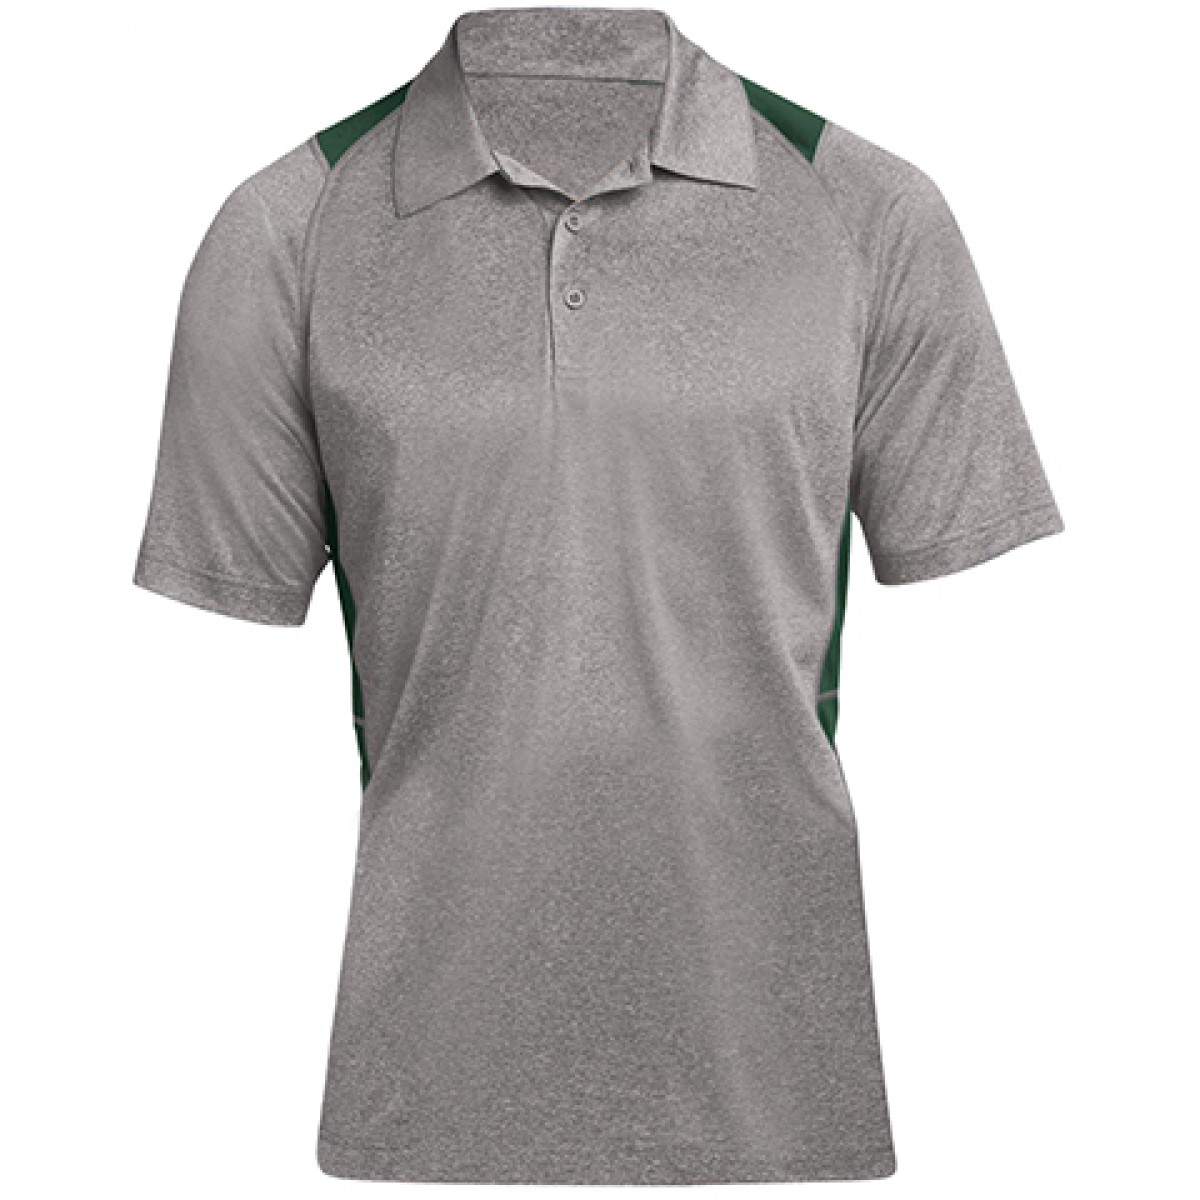 Heather Colorblock Contender Polo-Gray/Green-M